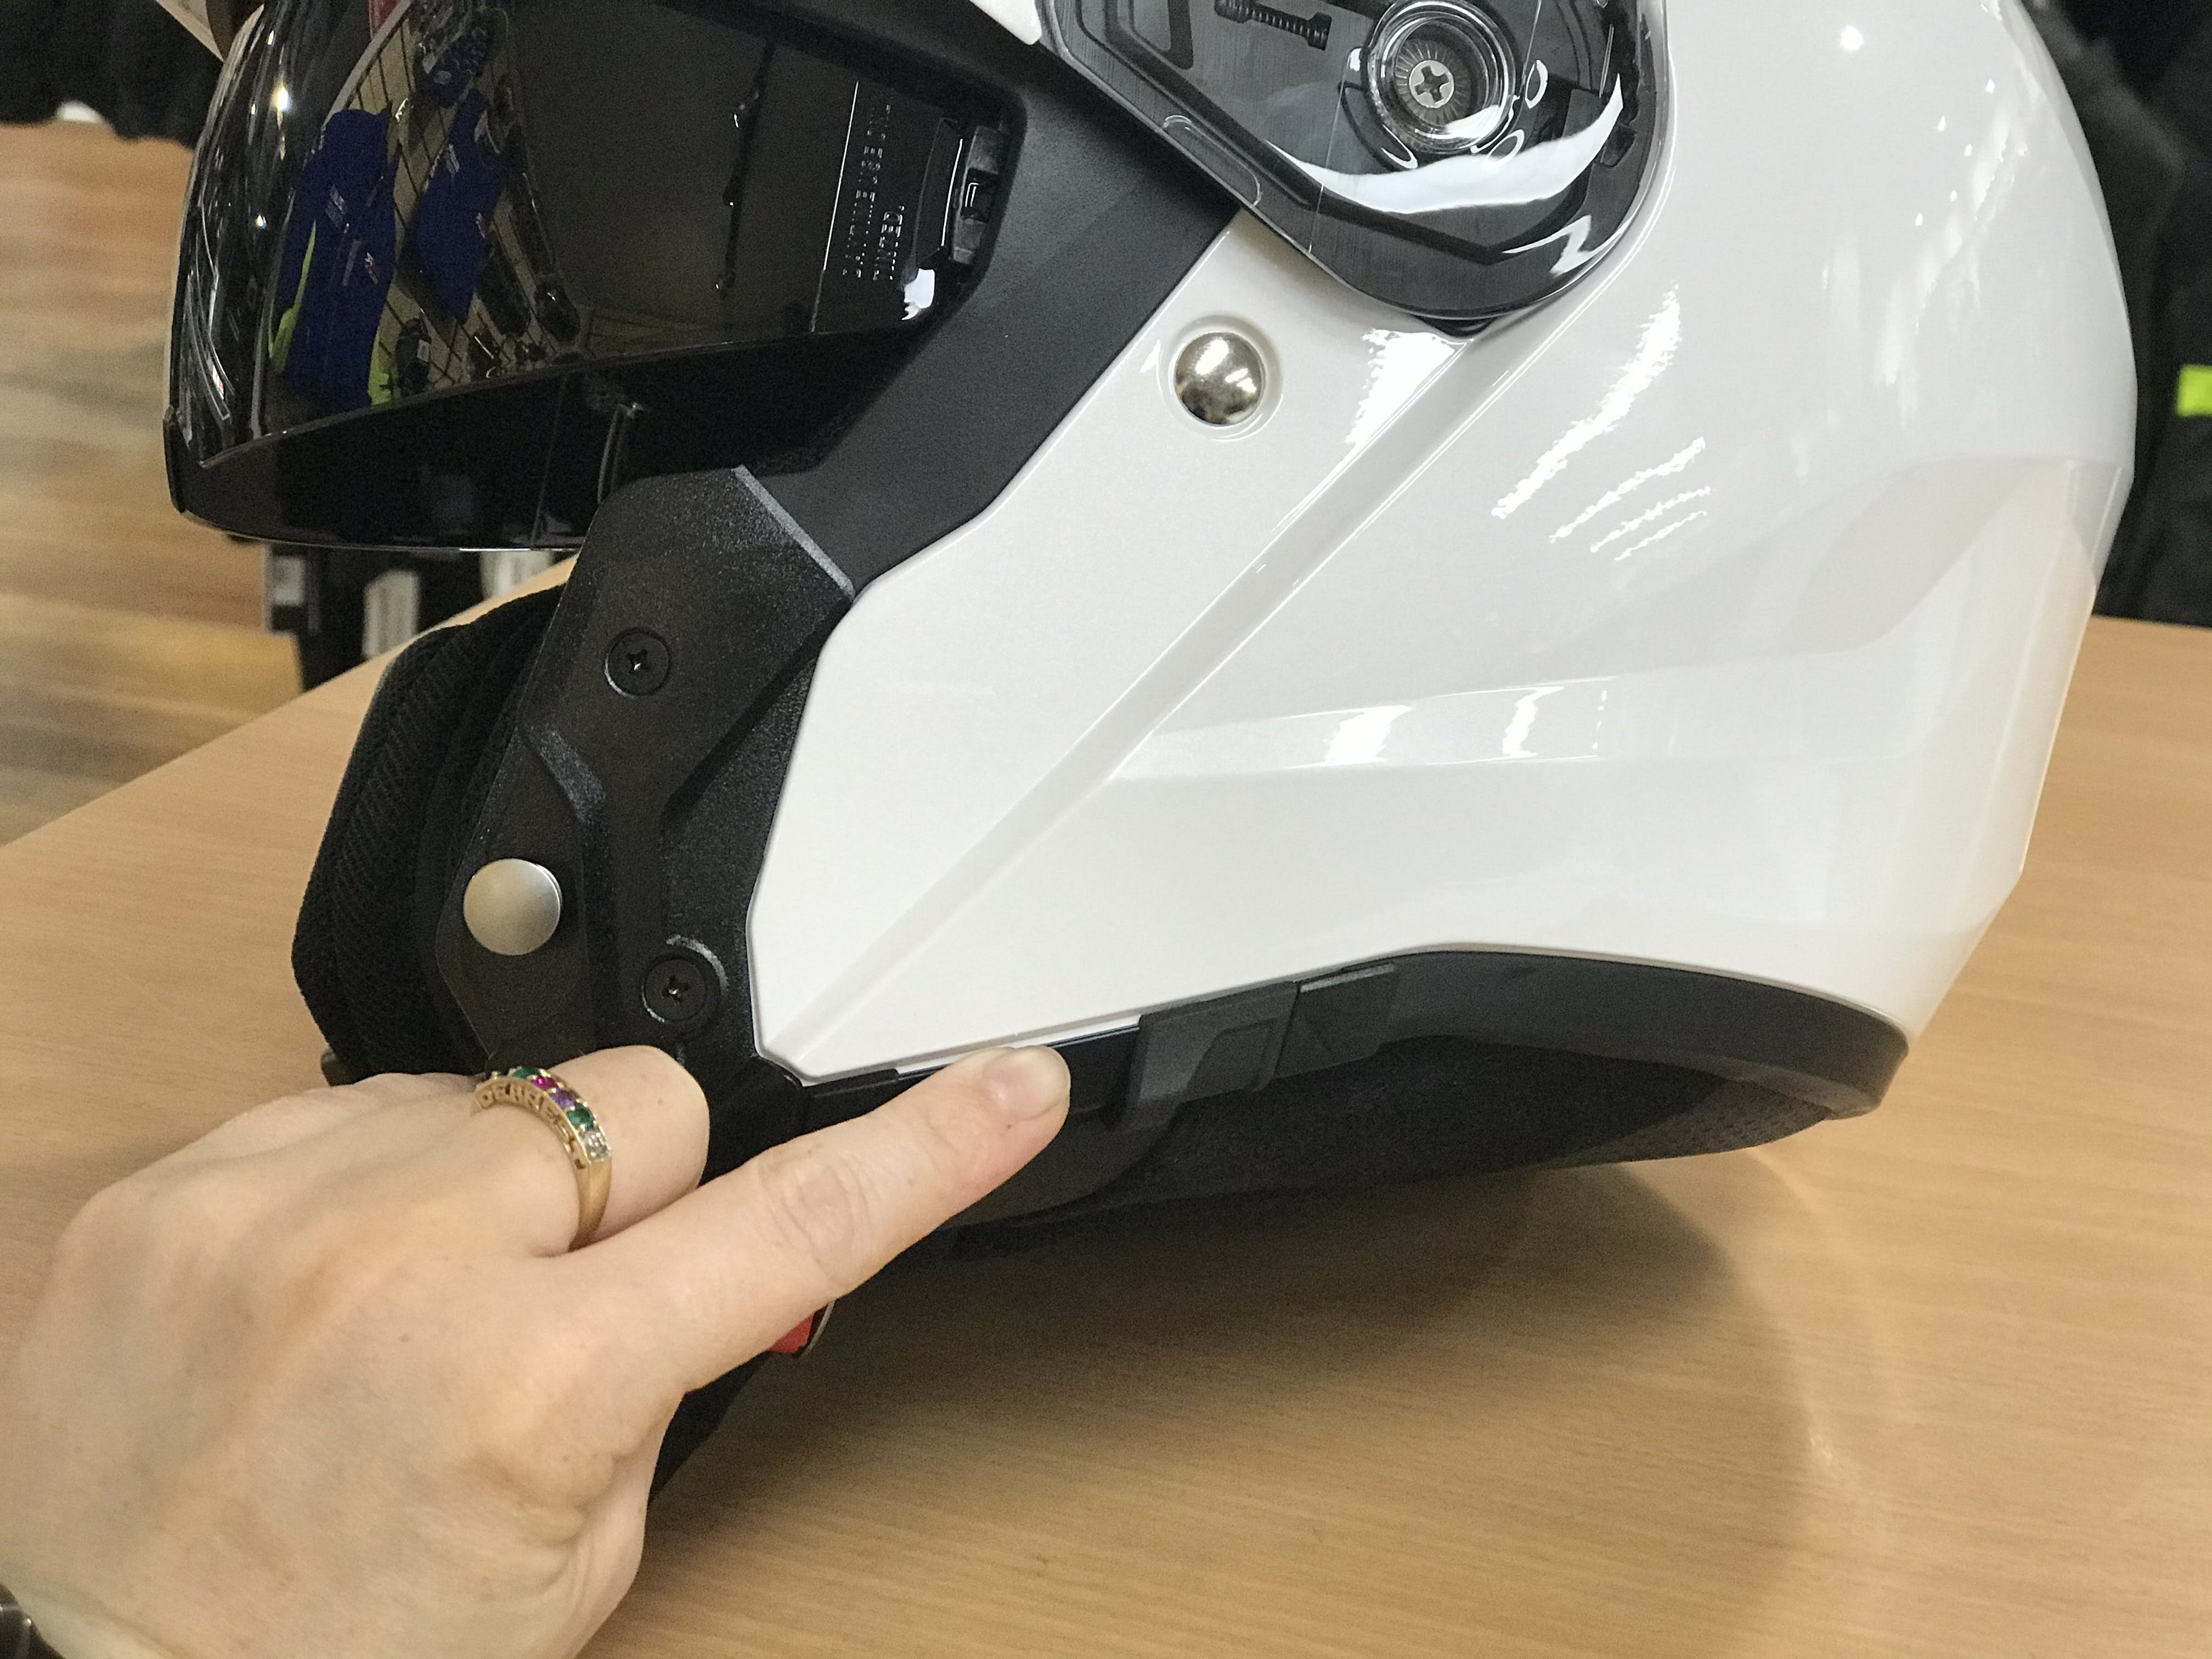 i90 open - pointing to where the new internal visor mechanism is